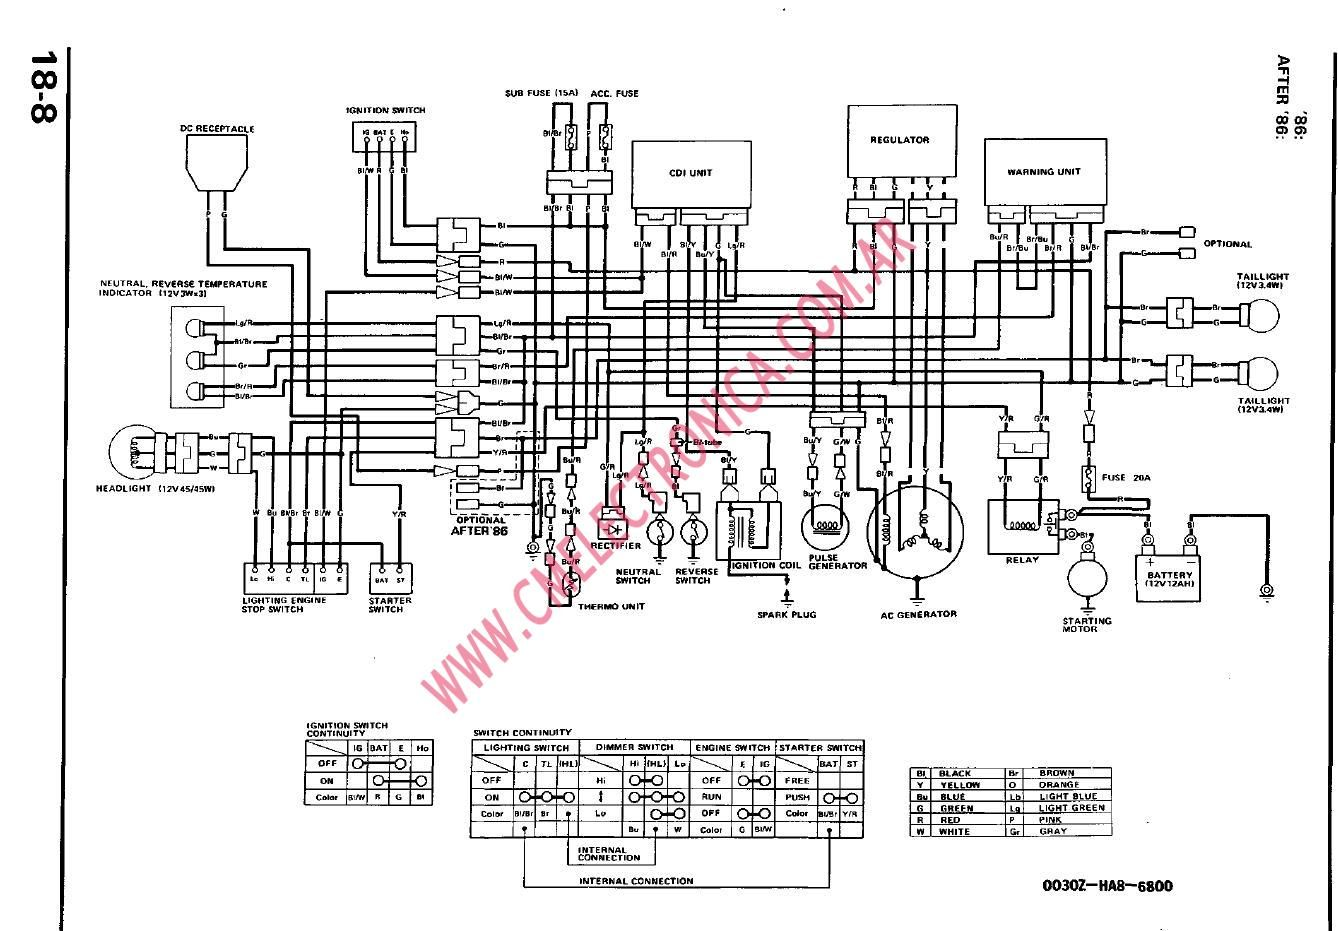 hight resolution of 1998 trx 250 fourtrax recon wiring 1993 honda 300ex wiring diagram1993 honda wiring diagram 14